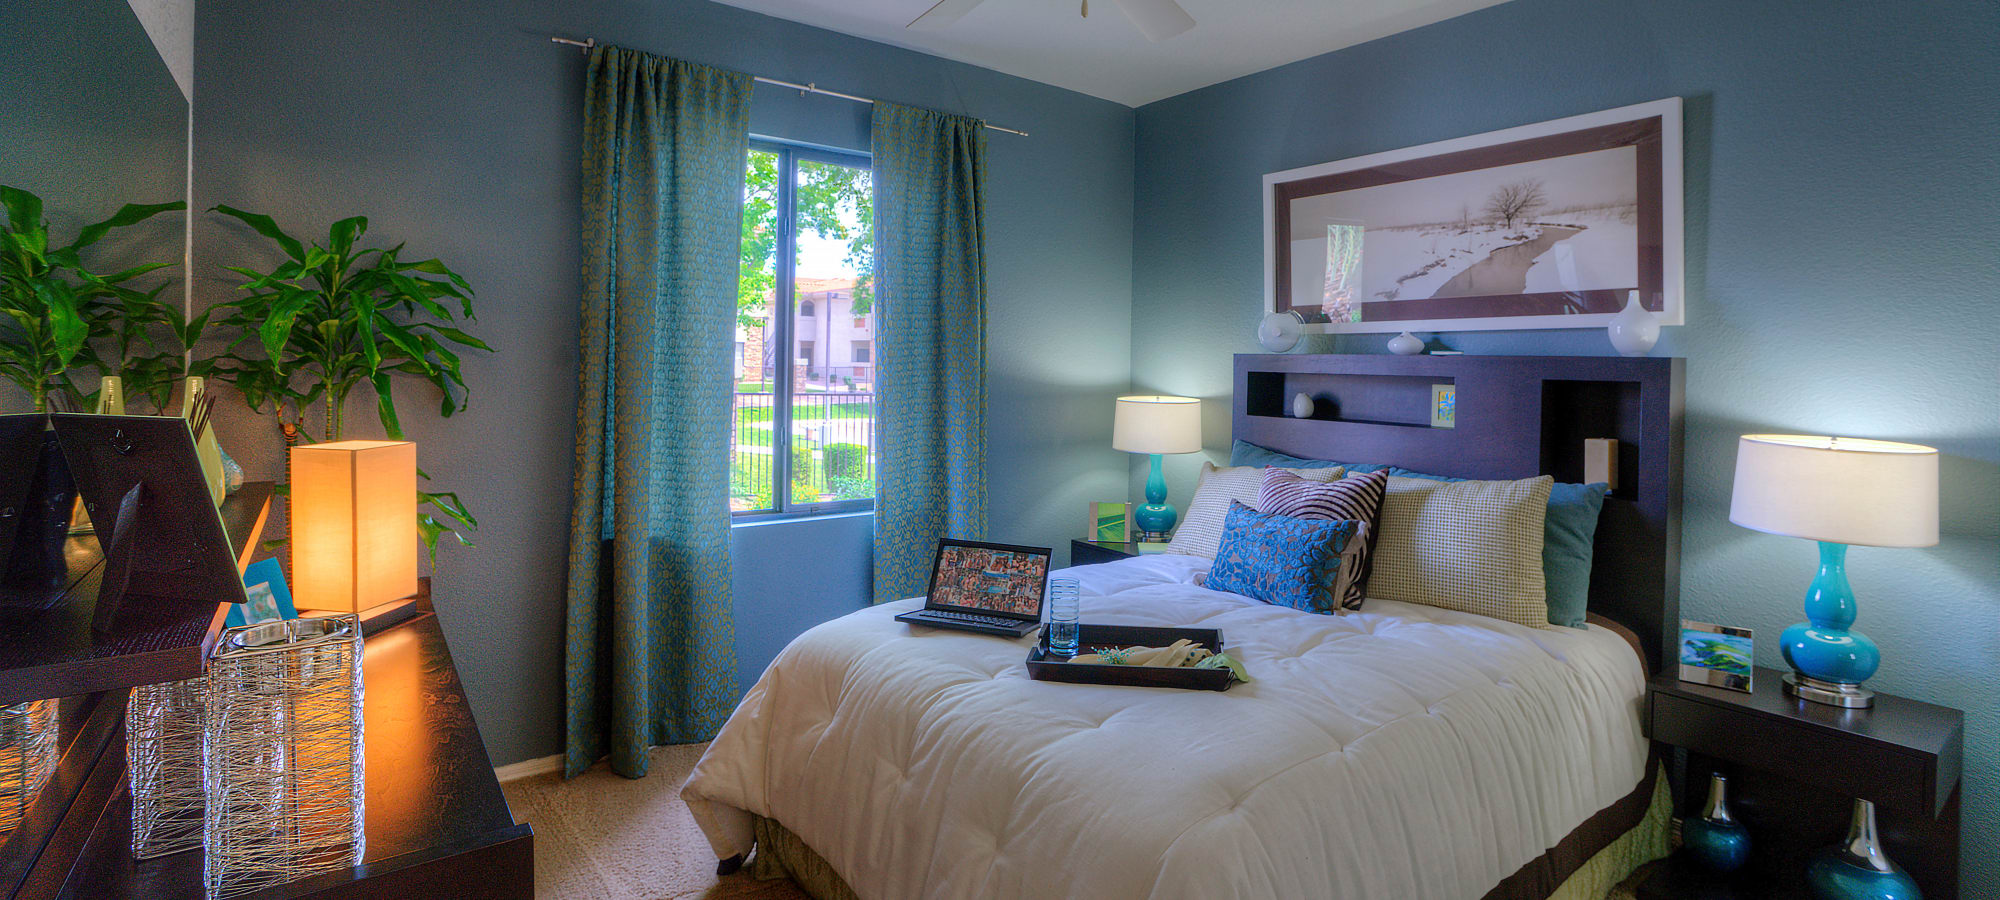 Beautifully decorated master bedroom in model home at San Marbeya in Tempe, Arizona